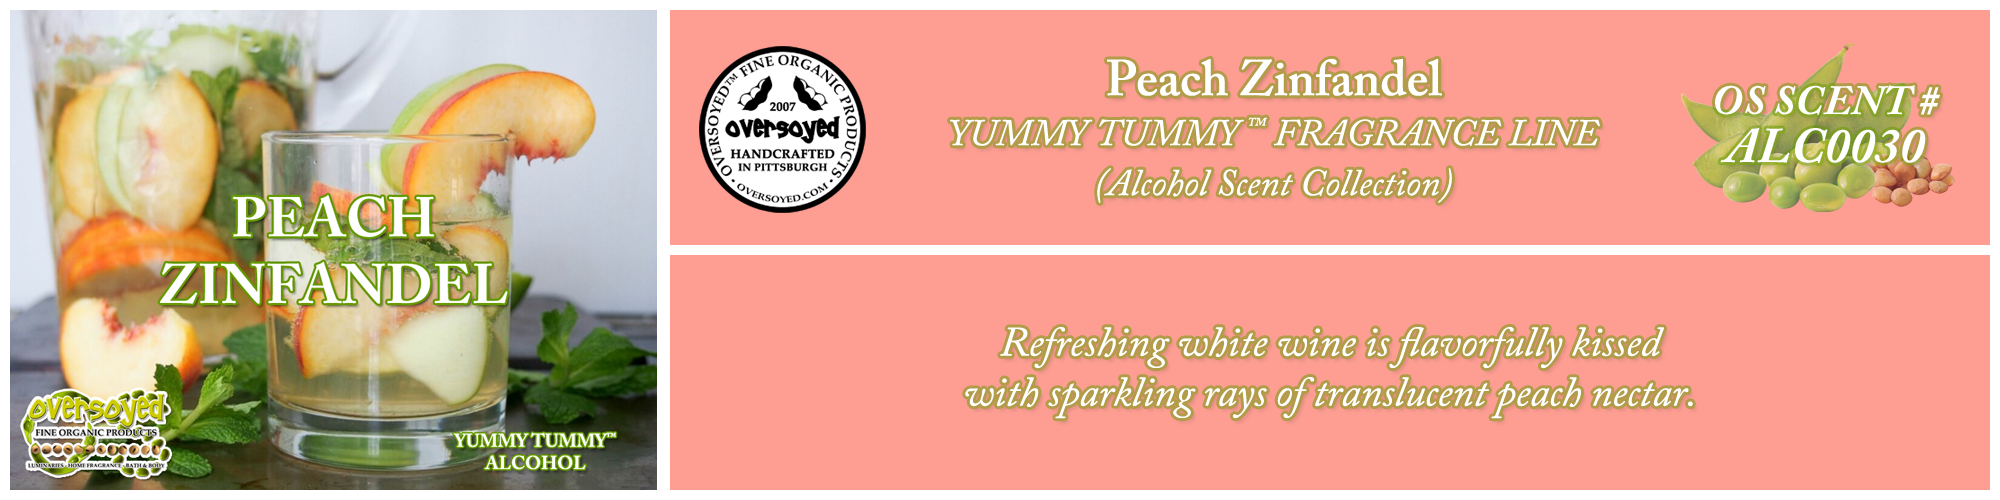 Peach Zinfandel Handcrafted Products Collection